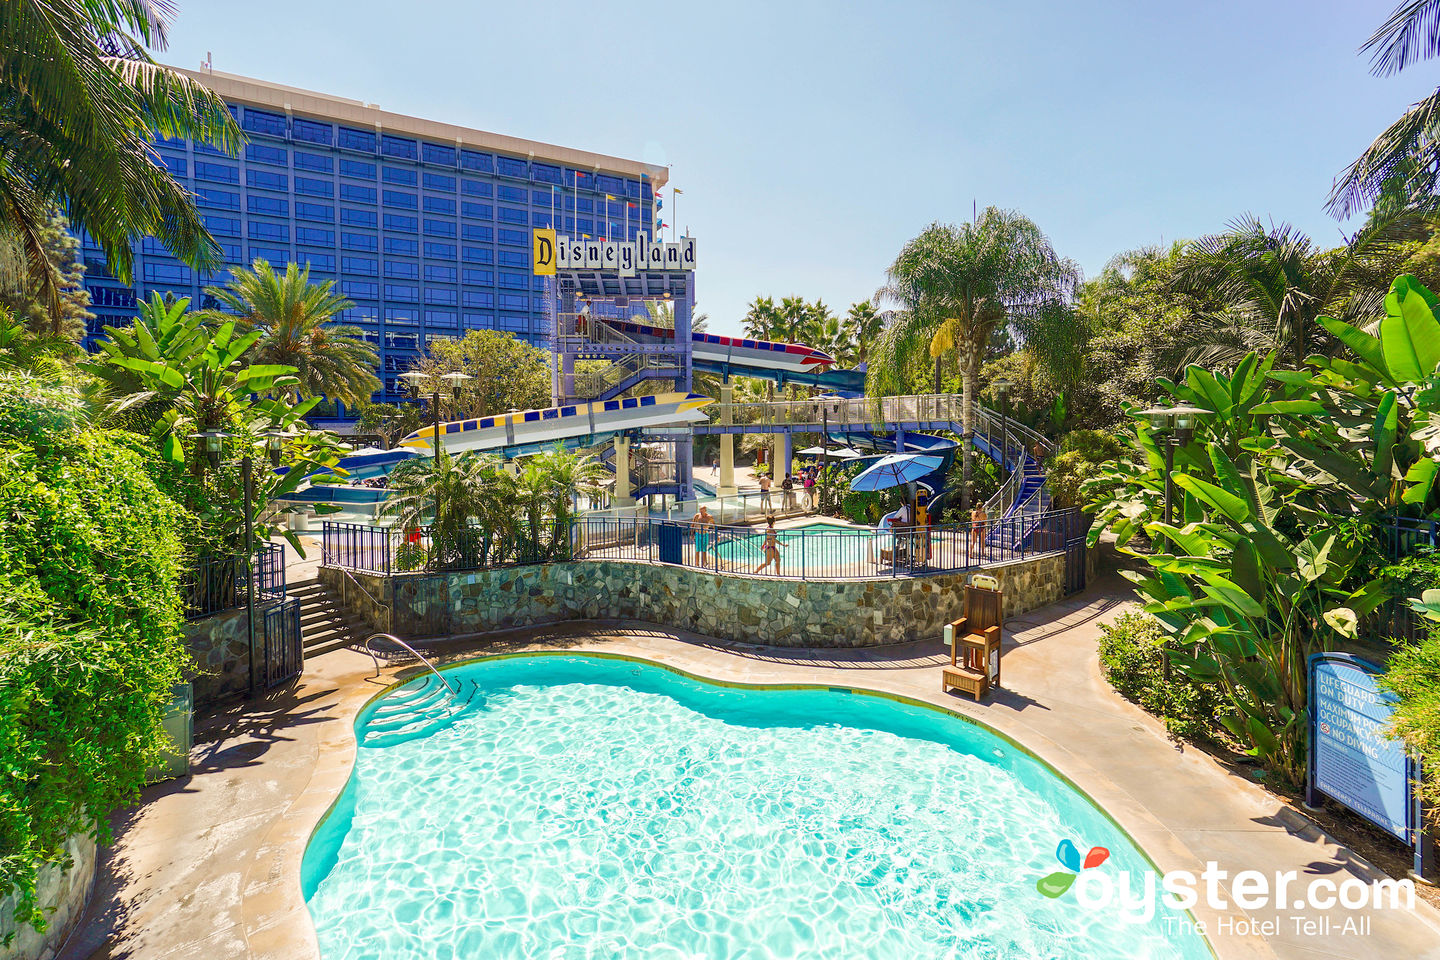 Disneyland Hotel The Standard View Room At The